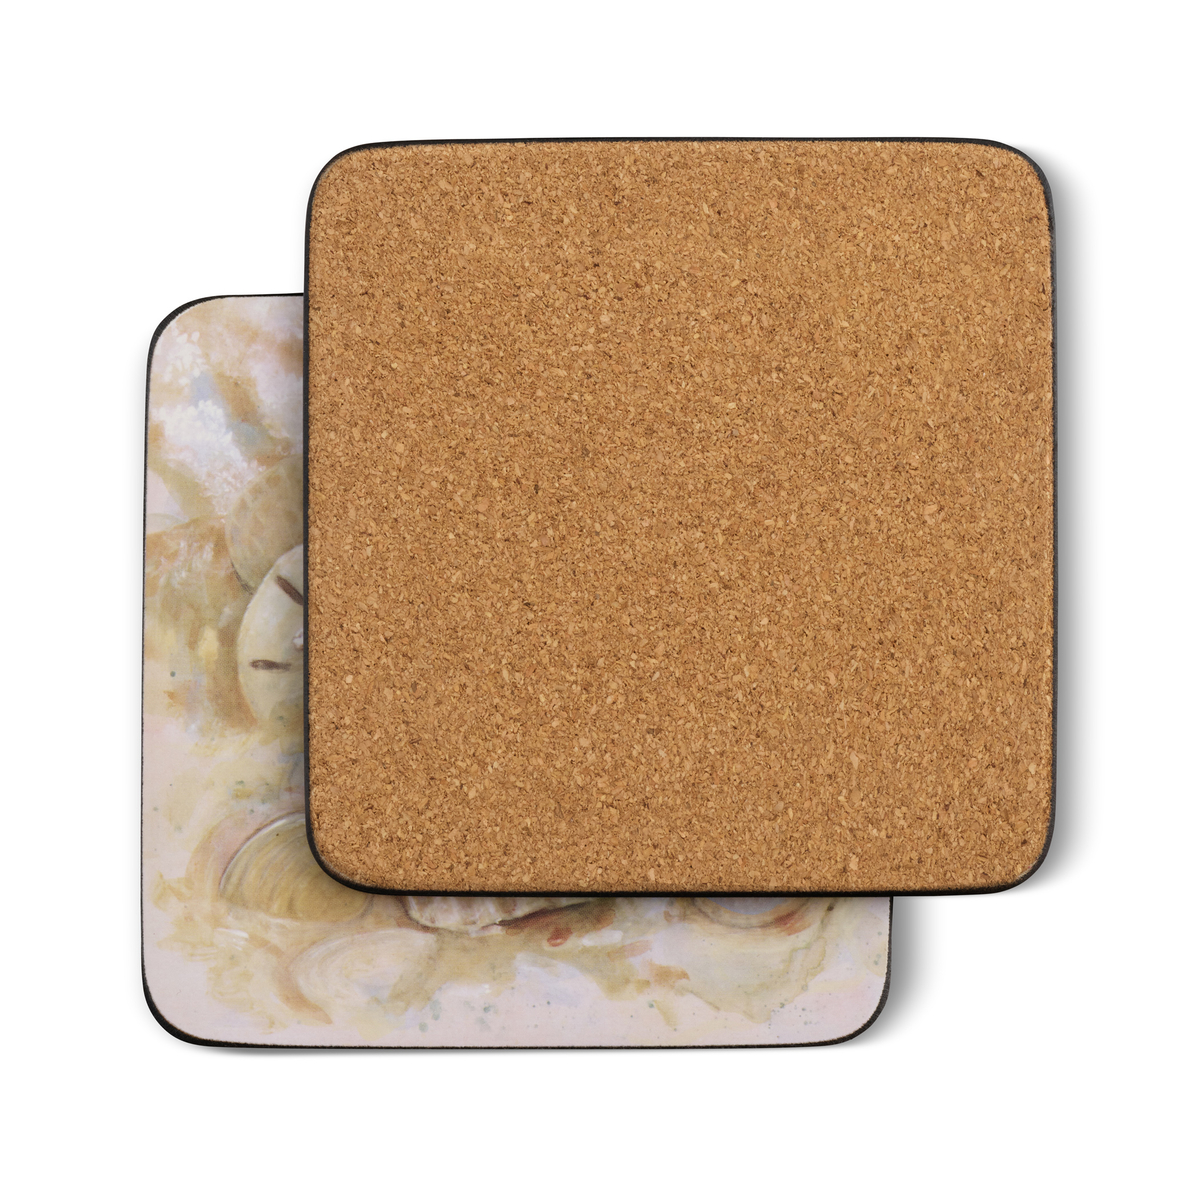 Pimpernel Beach Prize Coasters Set of 6 image number 1